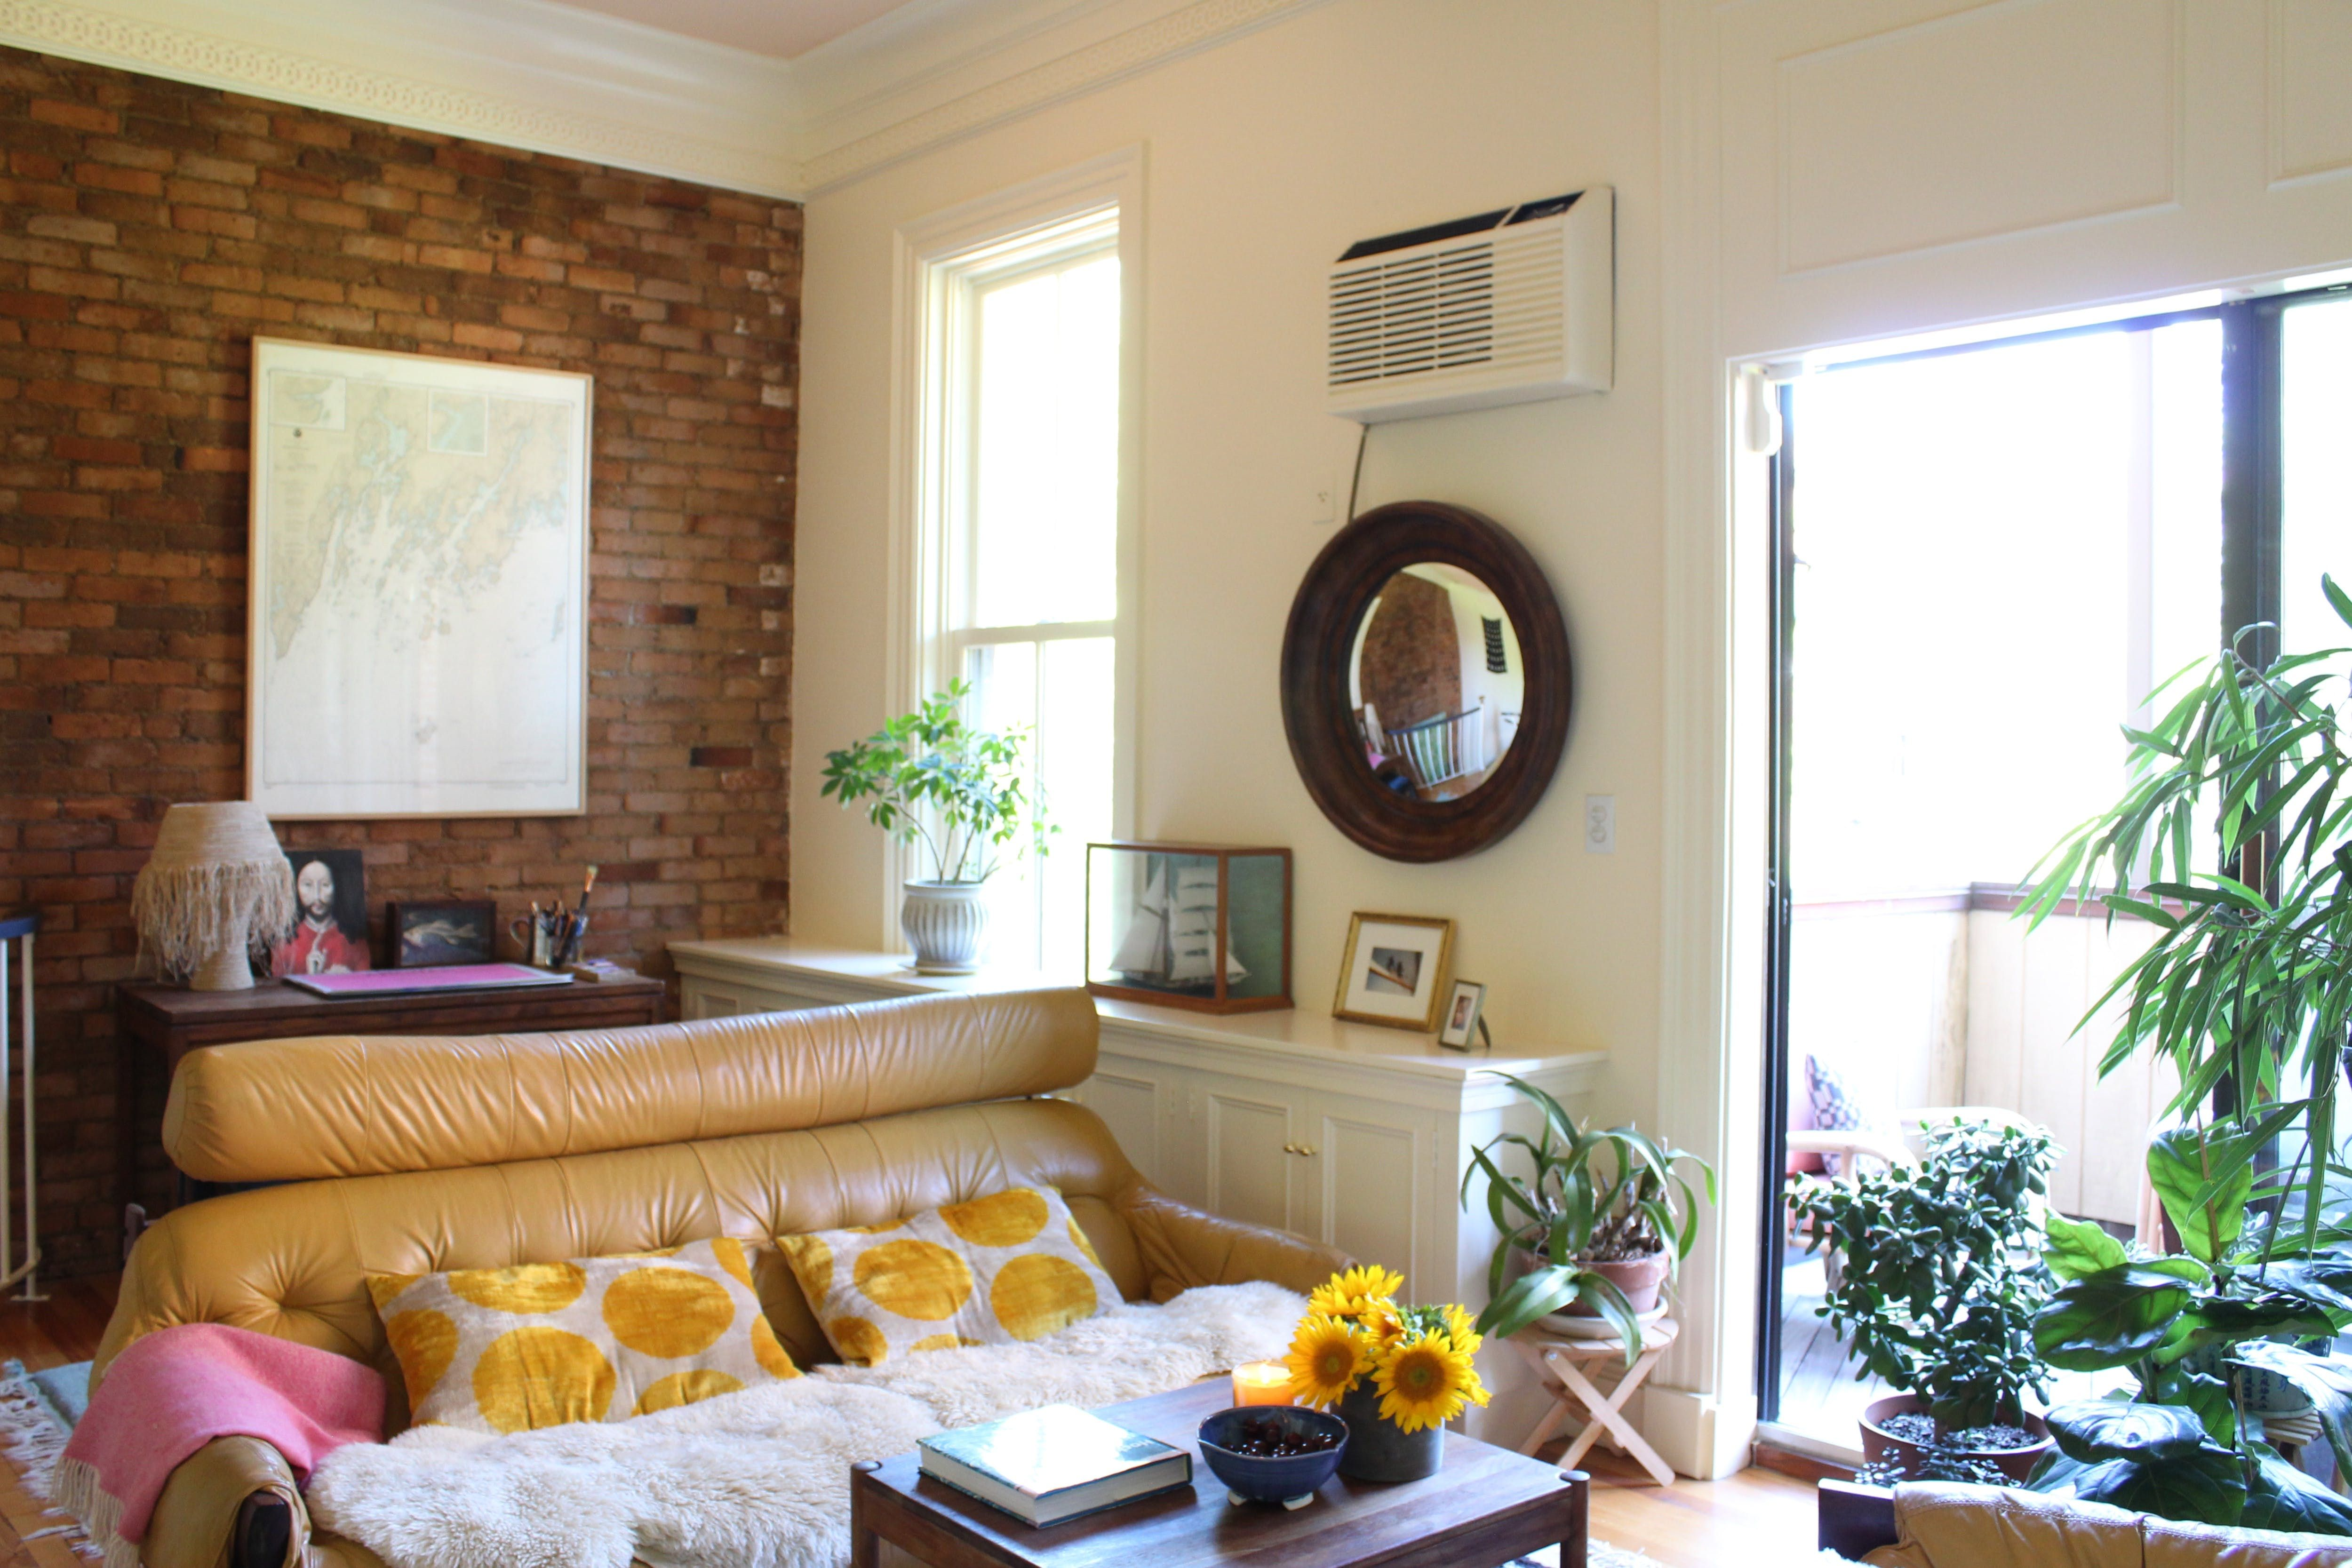 Second Hand Living Room Furniture Earthy Paint Colors For Tour A Boston Home Inspired By Travel All Things Beautiful Milicent And Her Fiance Found The Set At Store People Love It Or Hate She Said About But We Had To Have